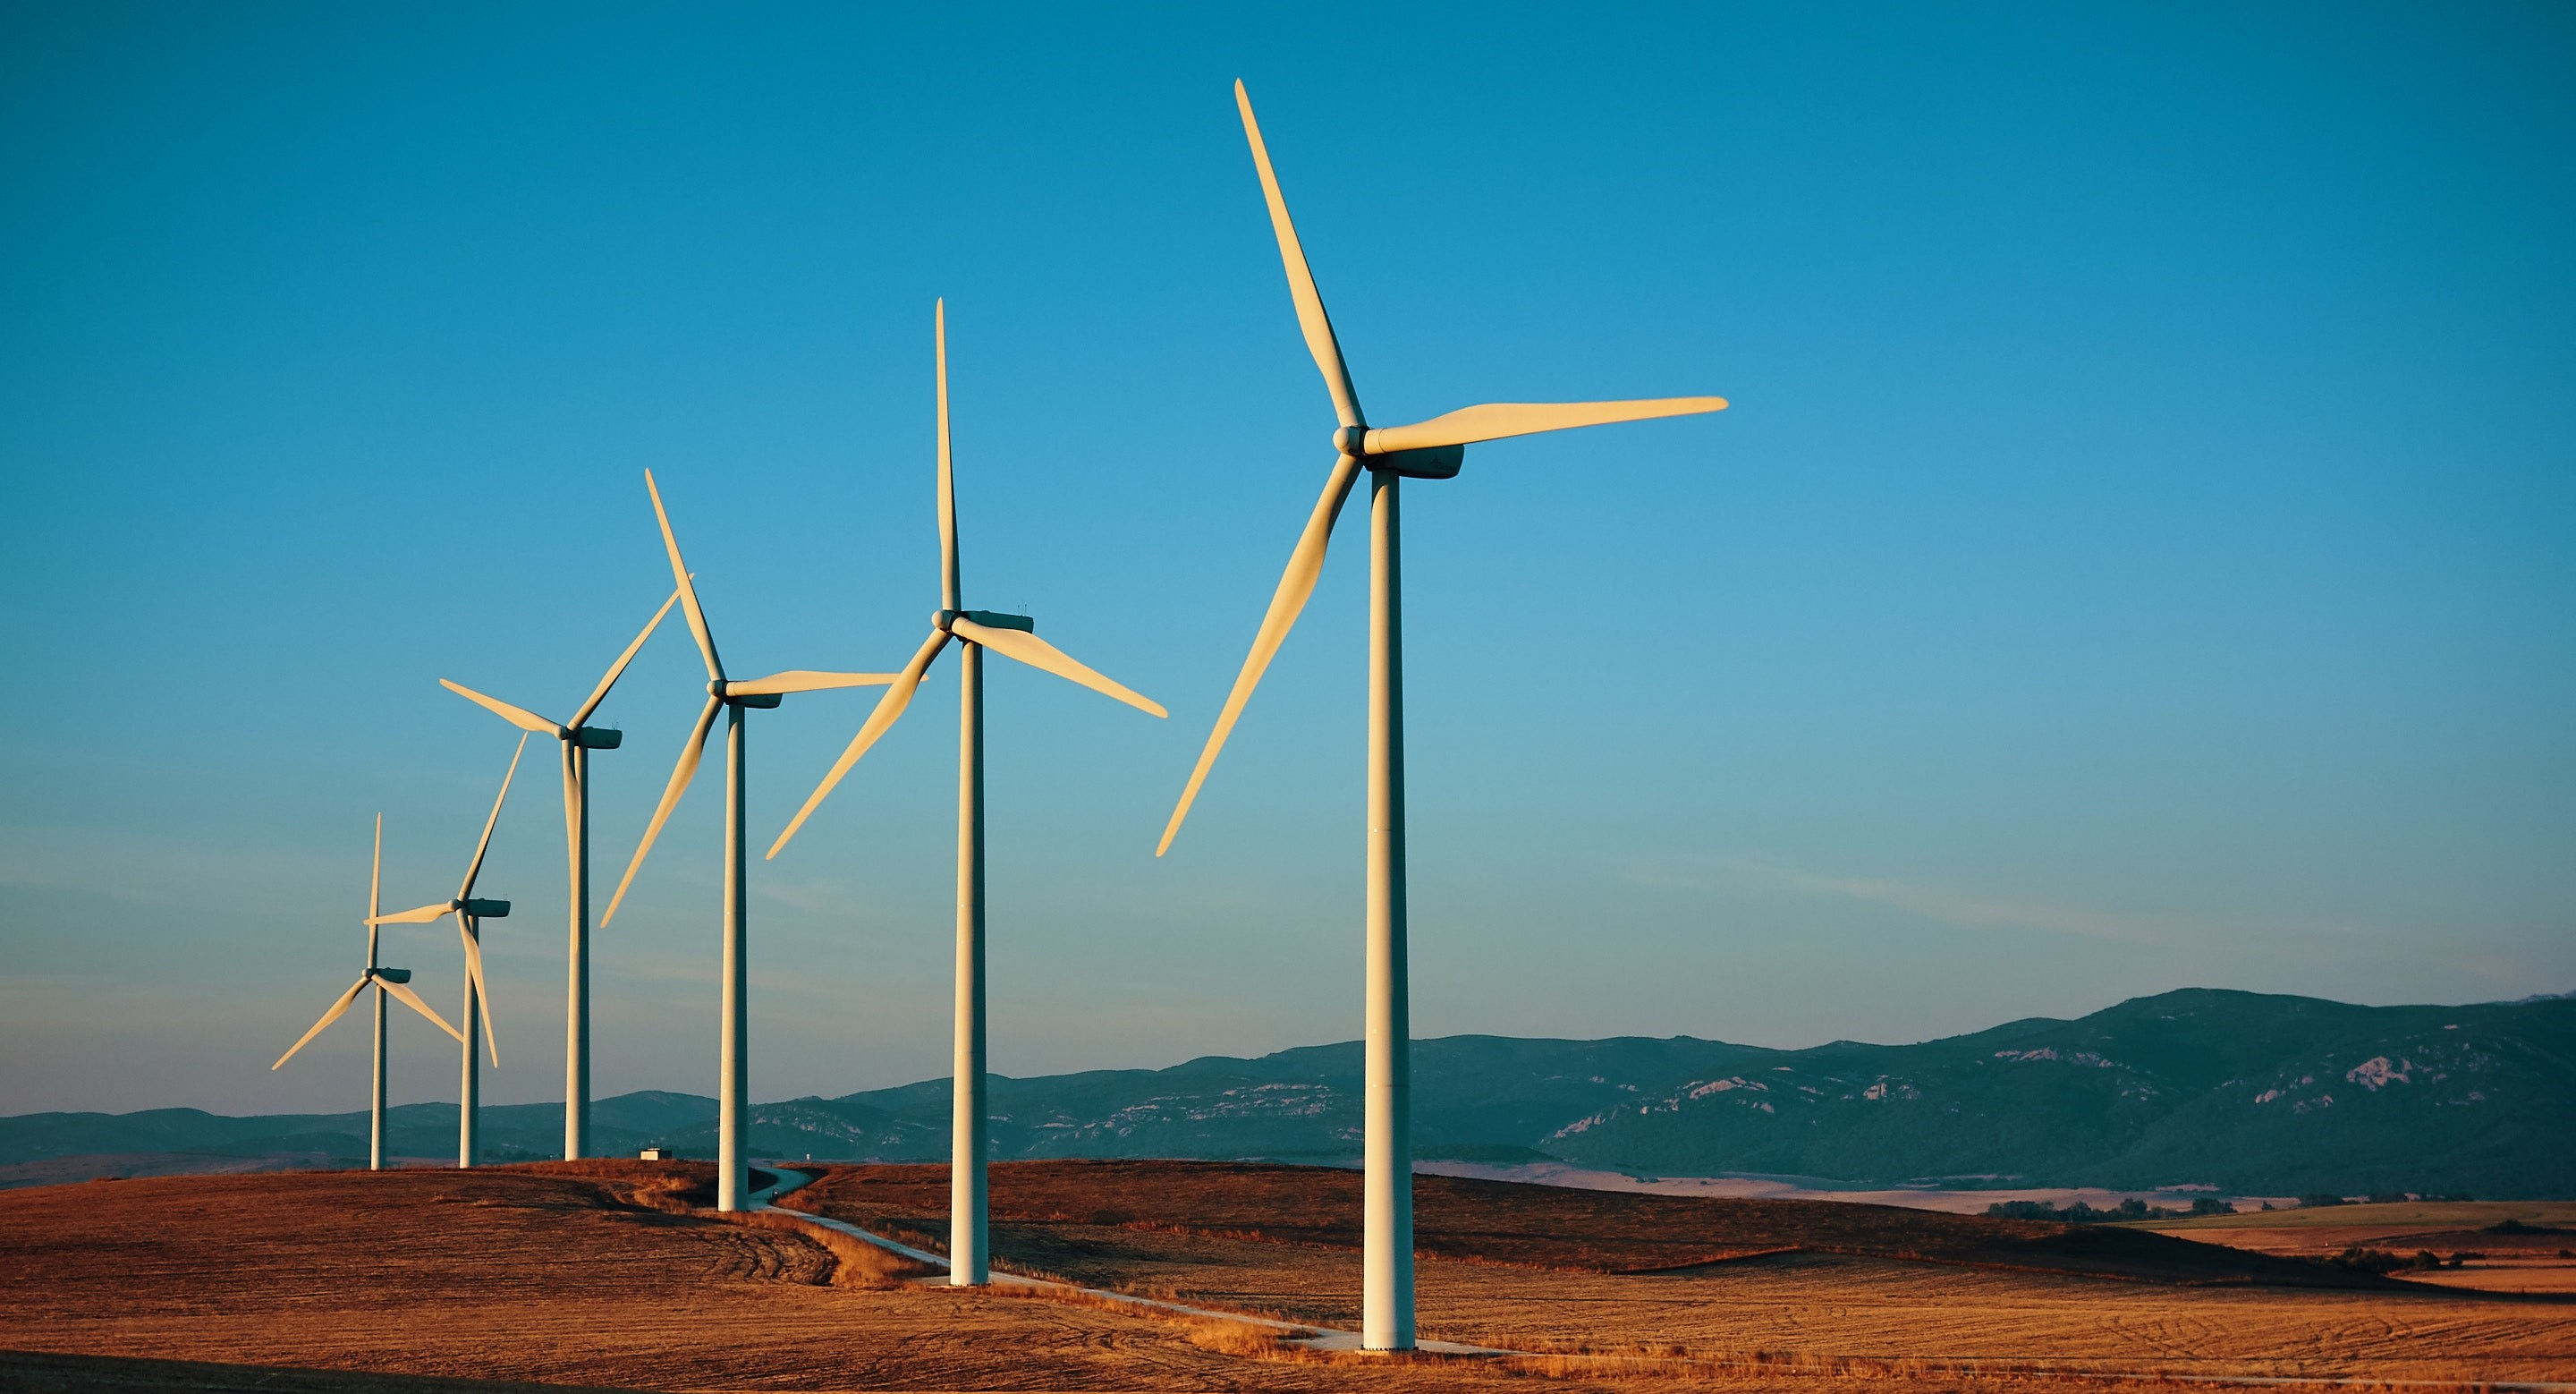 Gas generators are getting 20% higher price than wind farms in South Australia